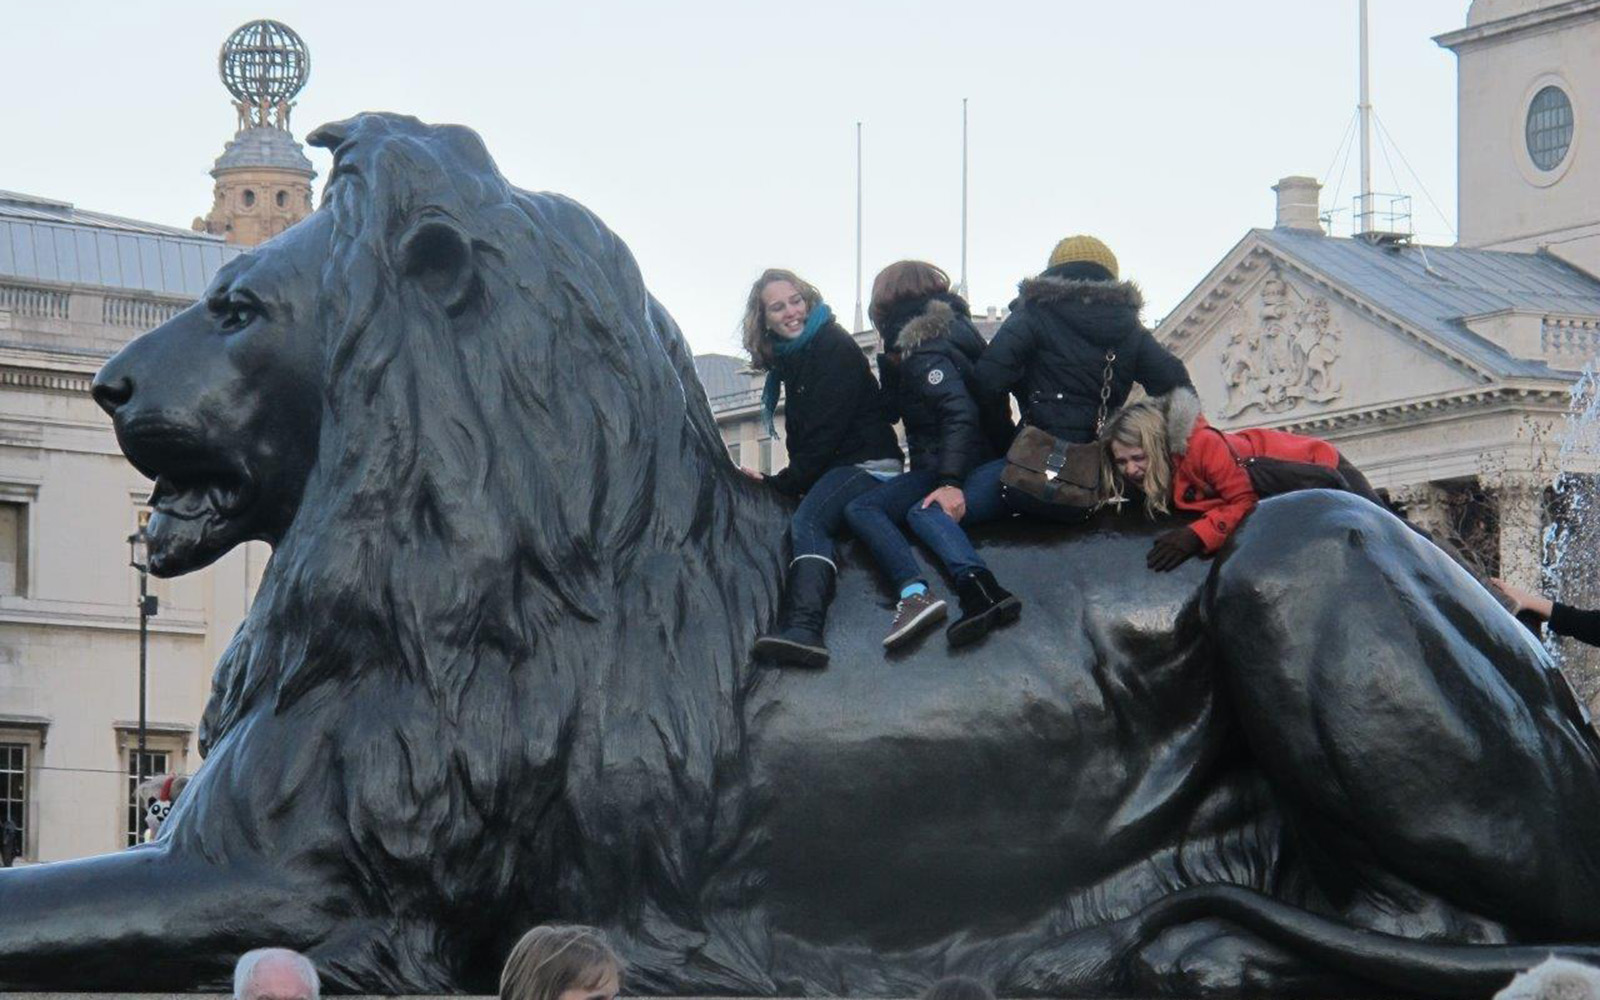 Riding Lion At Trafalgar Square